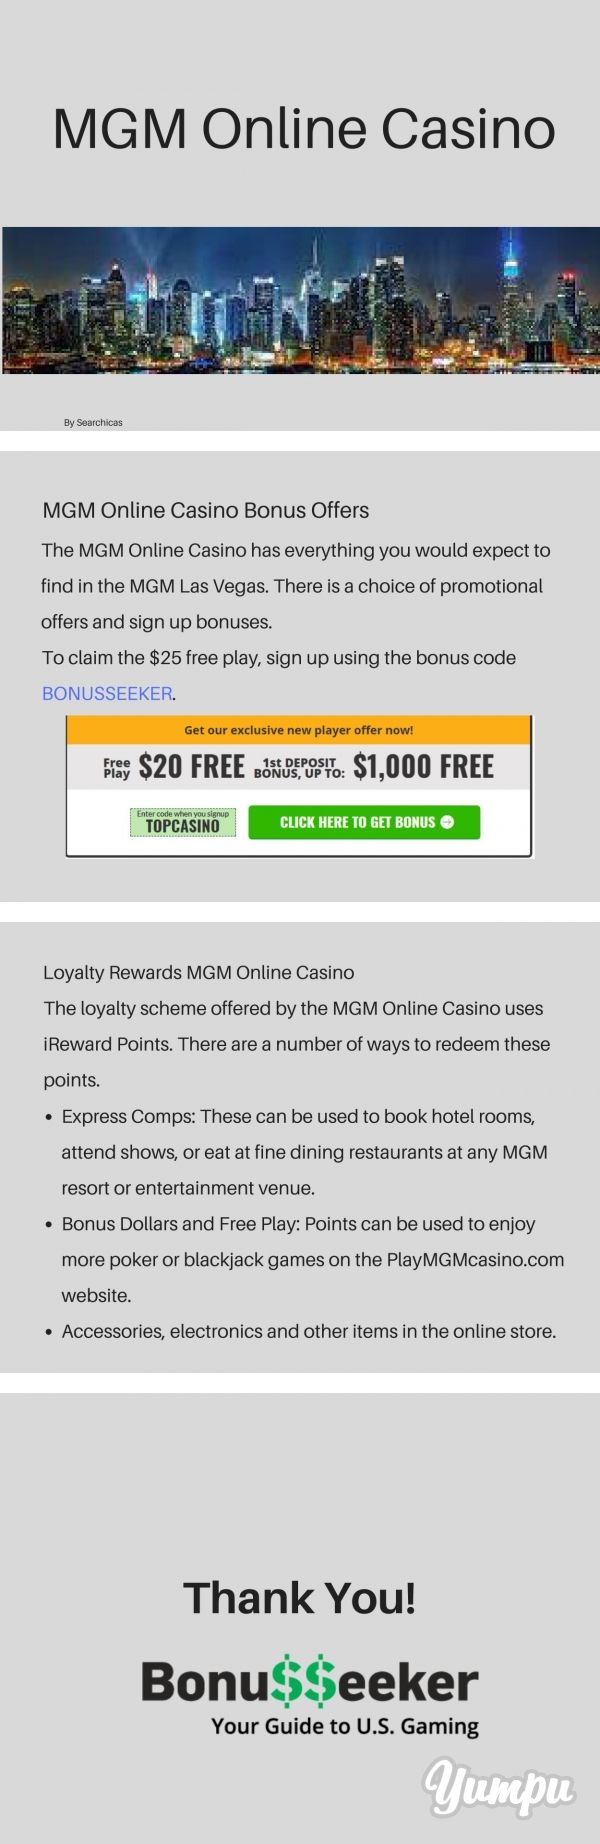 MGM Online Casino - Magazine with 4 pages: The excitement and action of a real-life casino can be enjoyed at home with the PlayMGMcasino.com website. This online casino brings the thrill of Vegas to your computer or mobile device. All of the games you would find in the real MGM casino can be played on the online casino as well.